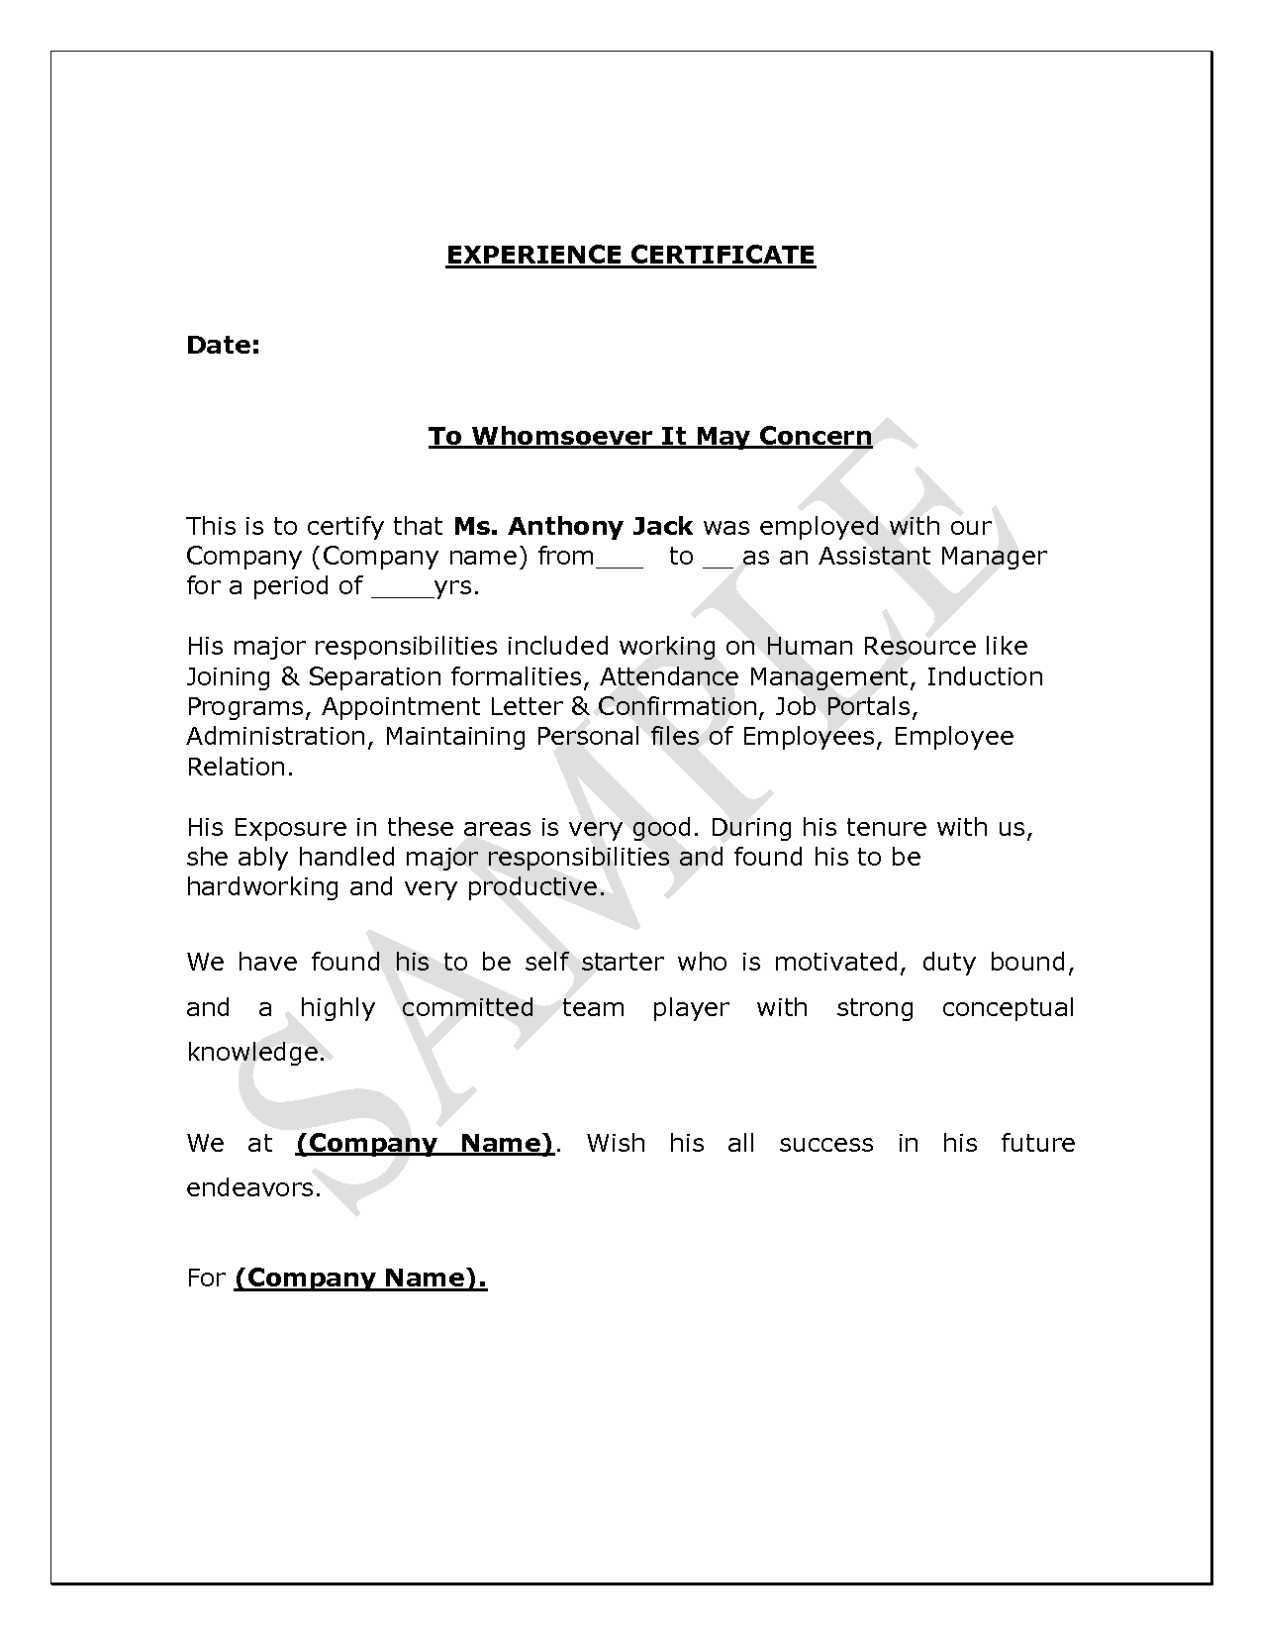 job certificate format mission statement outline prompt letter studychacha letterhtml